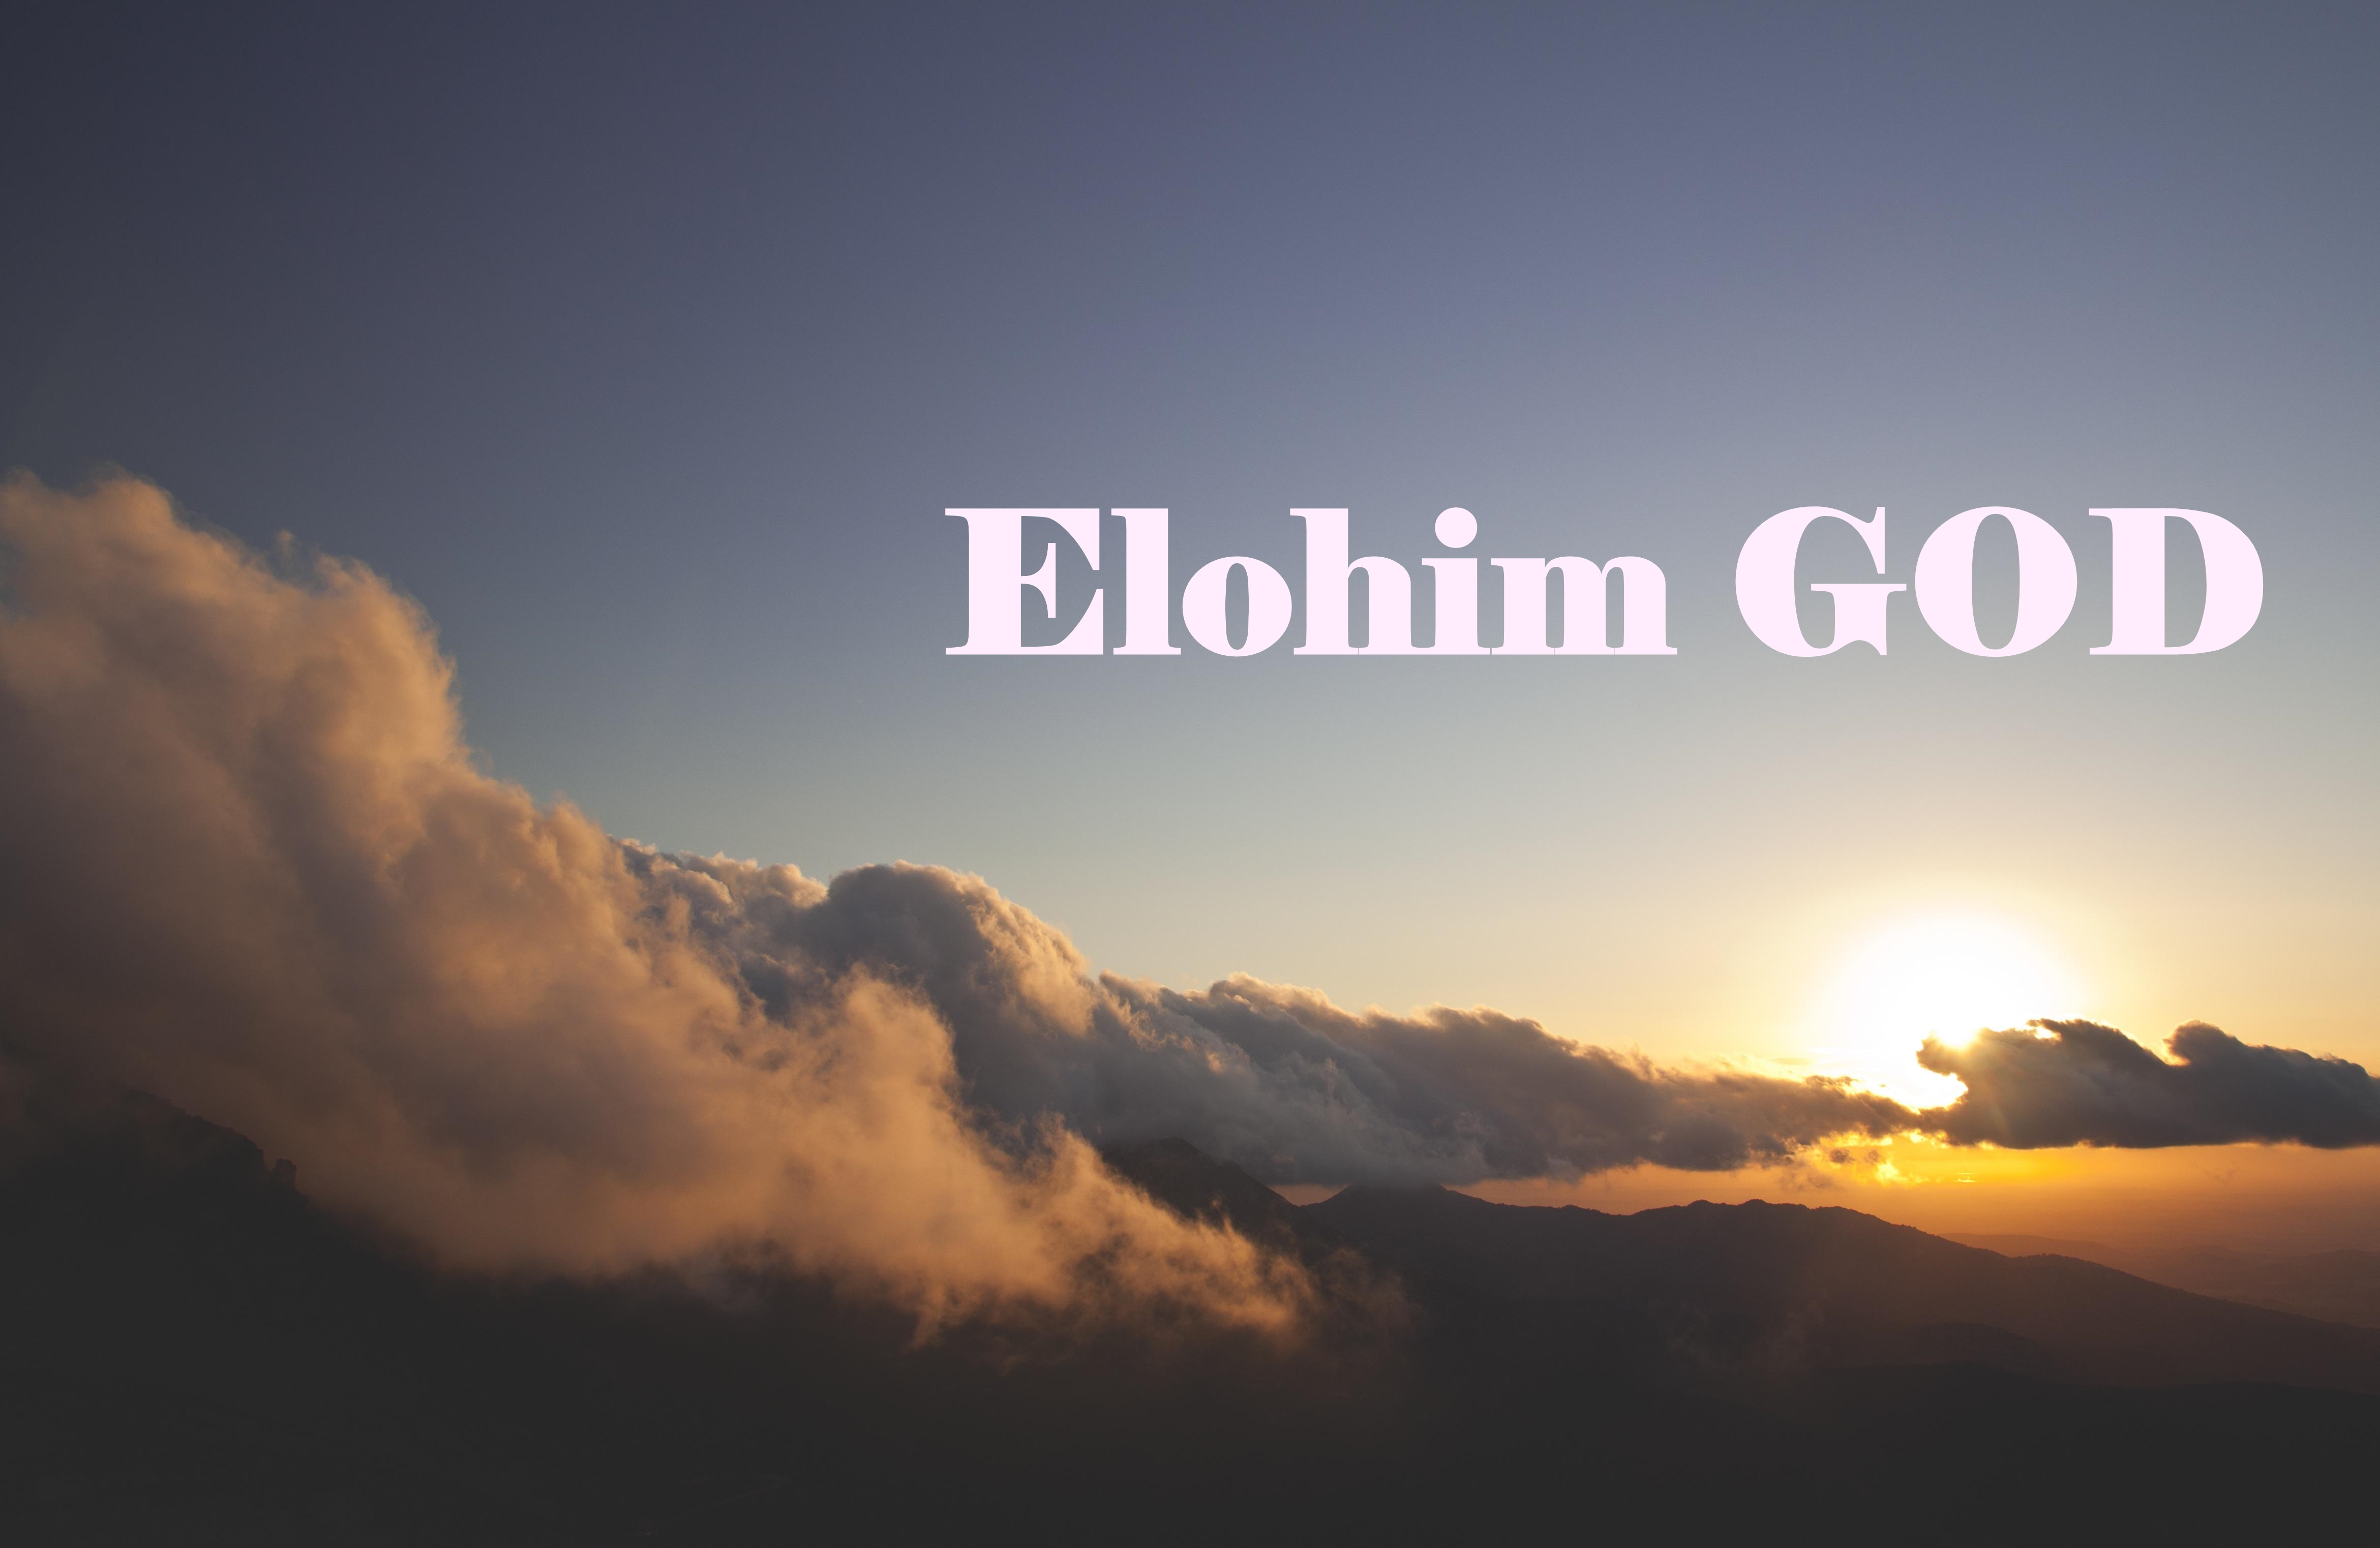 Elohim God will appear in front of us